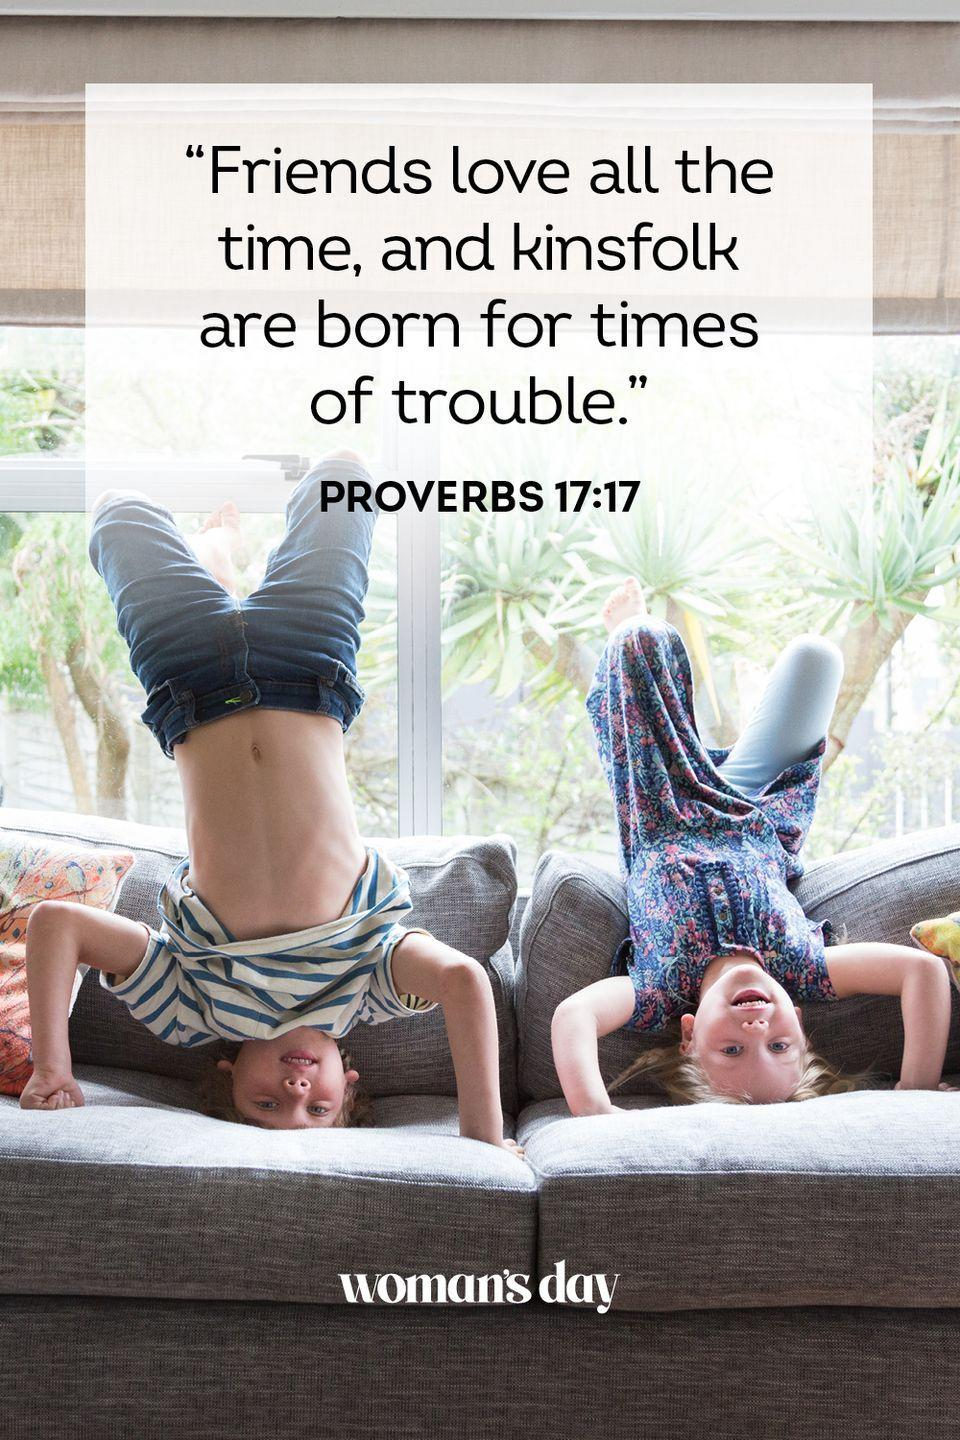 """<p>""""Friends love all the time, and kinsfolk are born for times of trouble."""" — Proverbs 17:17</p><p><strong>The Good News:</strong> Friends come and go, but family sticks with you during the hardest of times.</p>"""